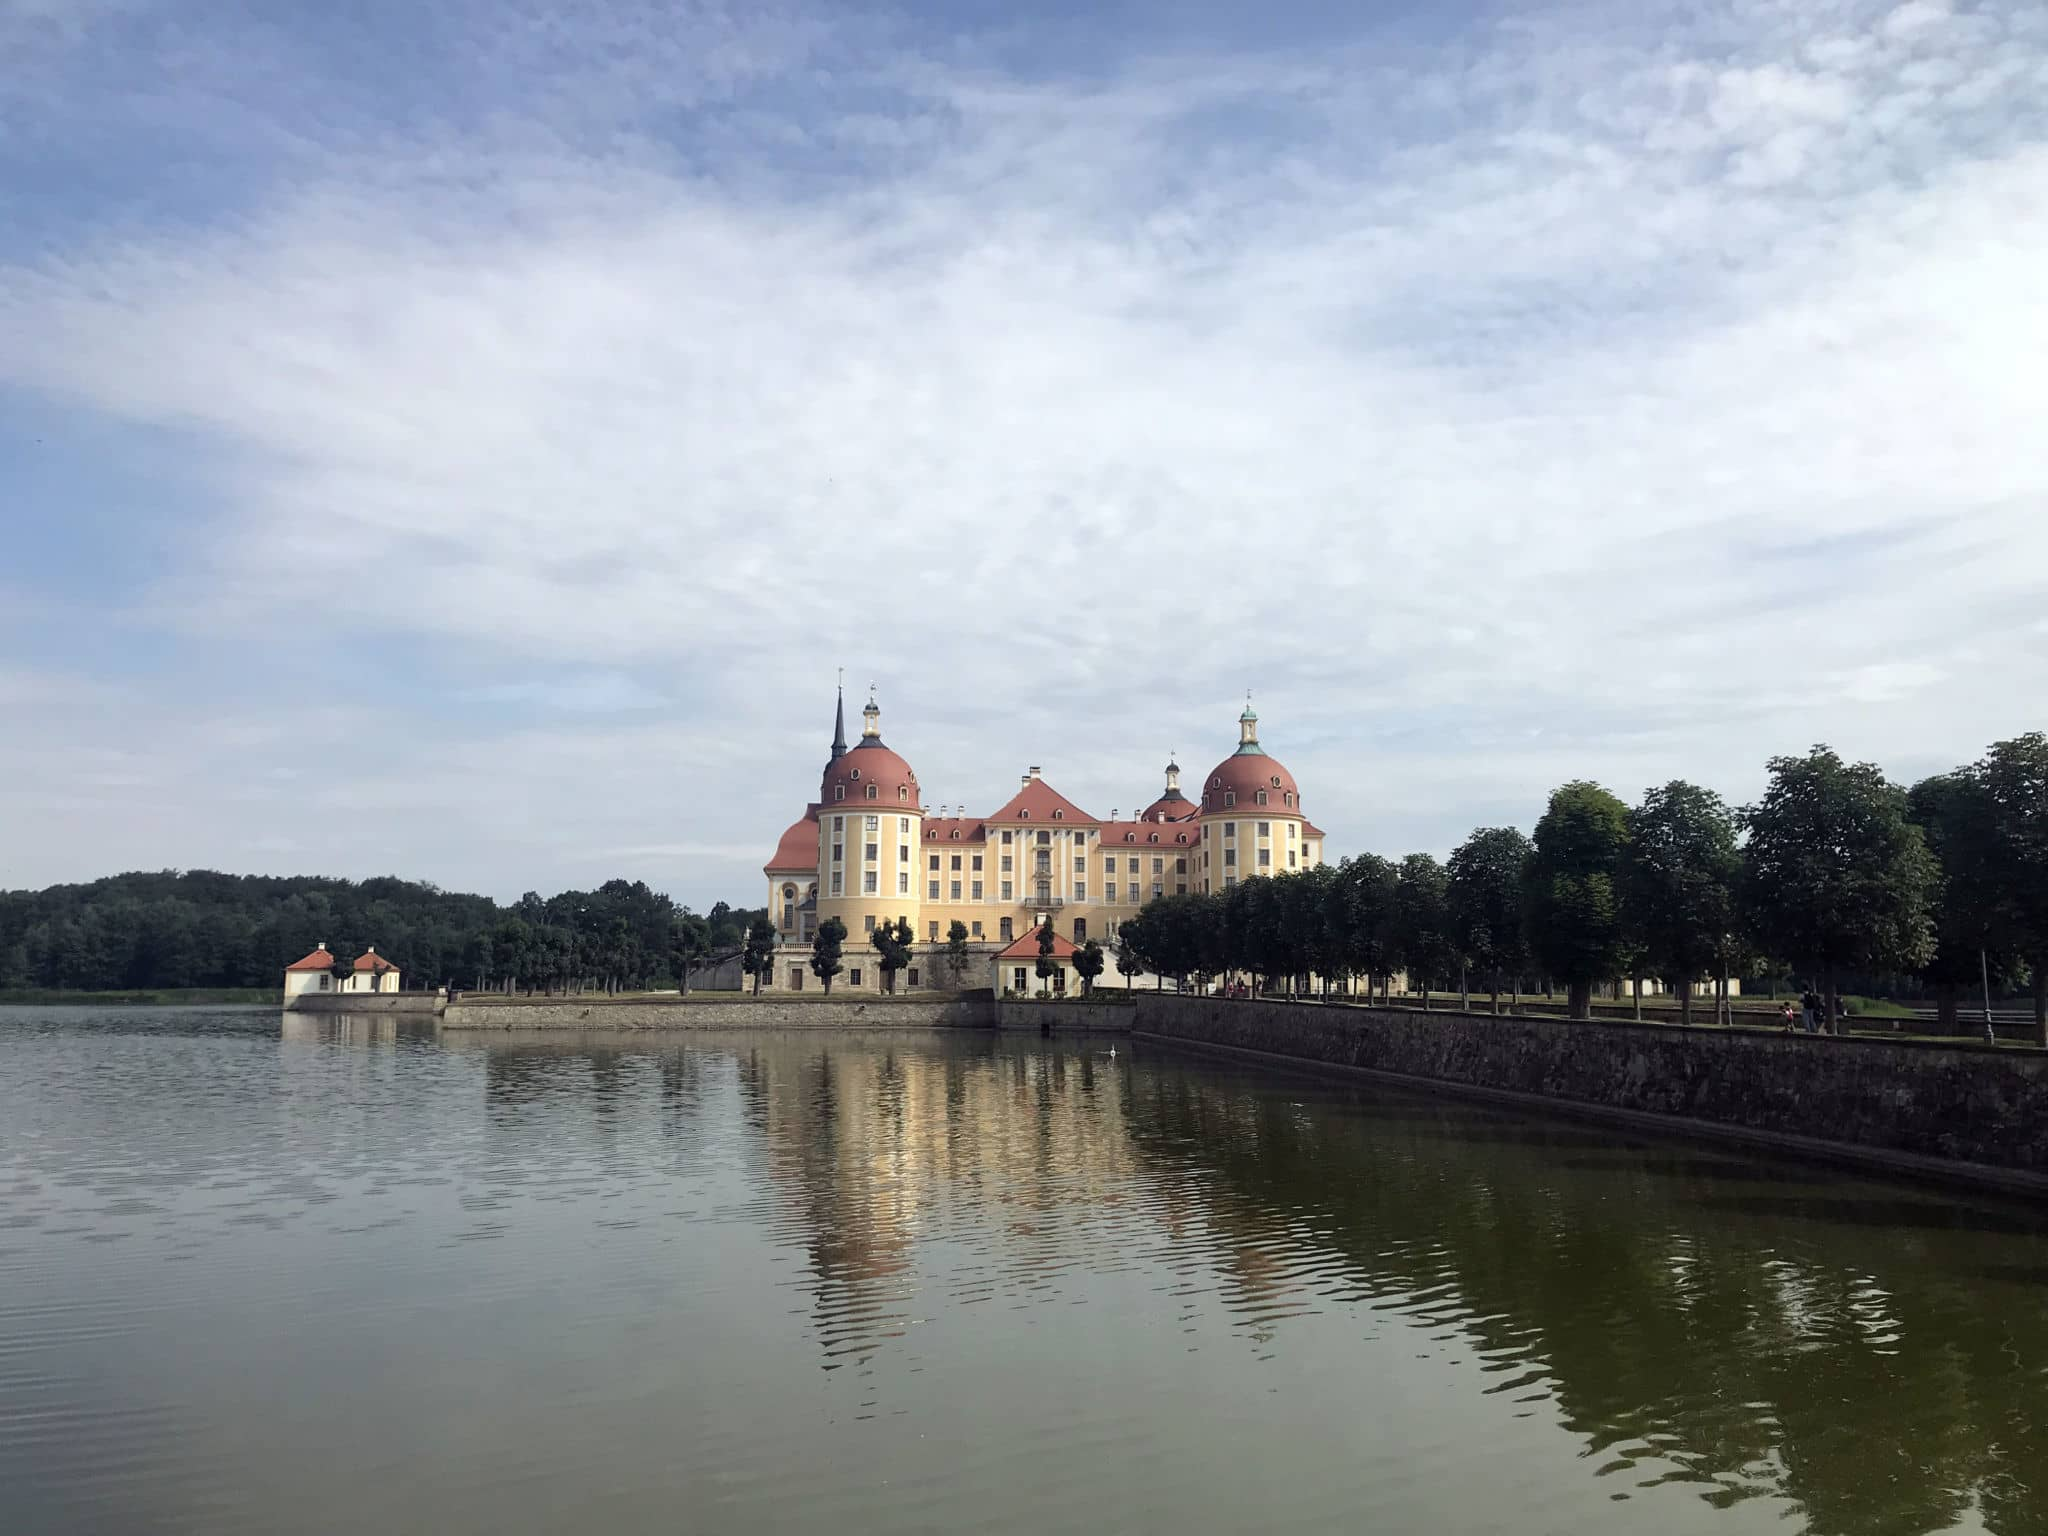 Viking Cruises took us on a Royal Visit to Moritzburg Castle and Saxony!